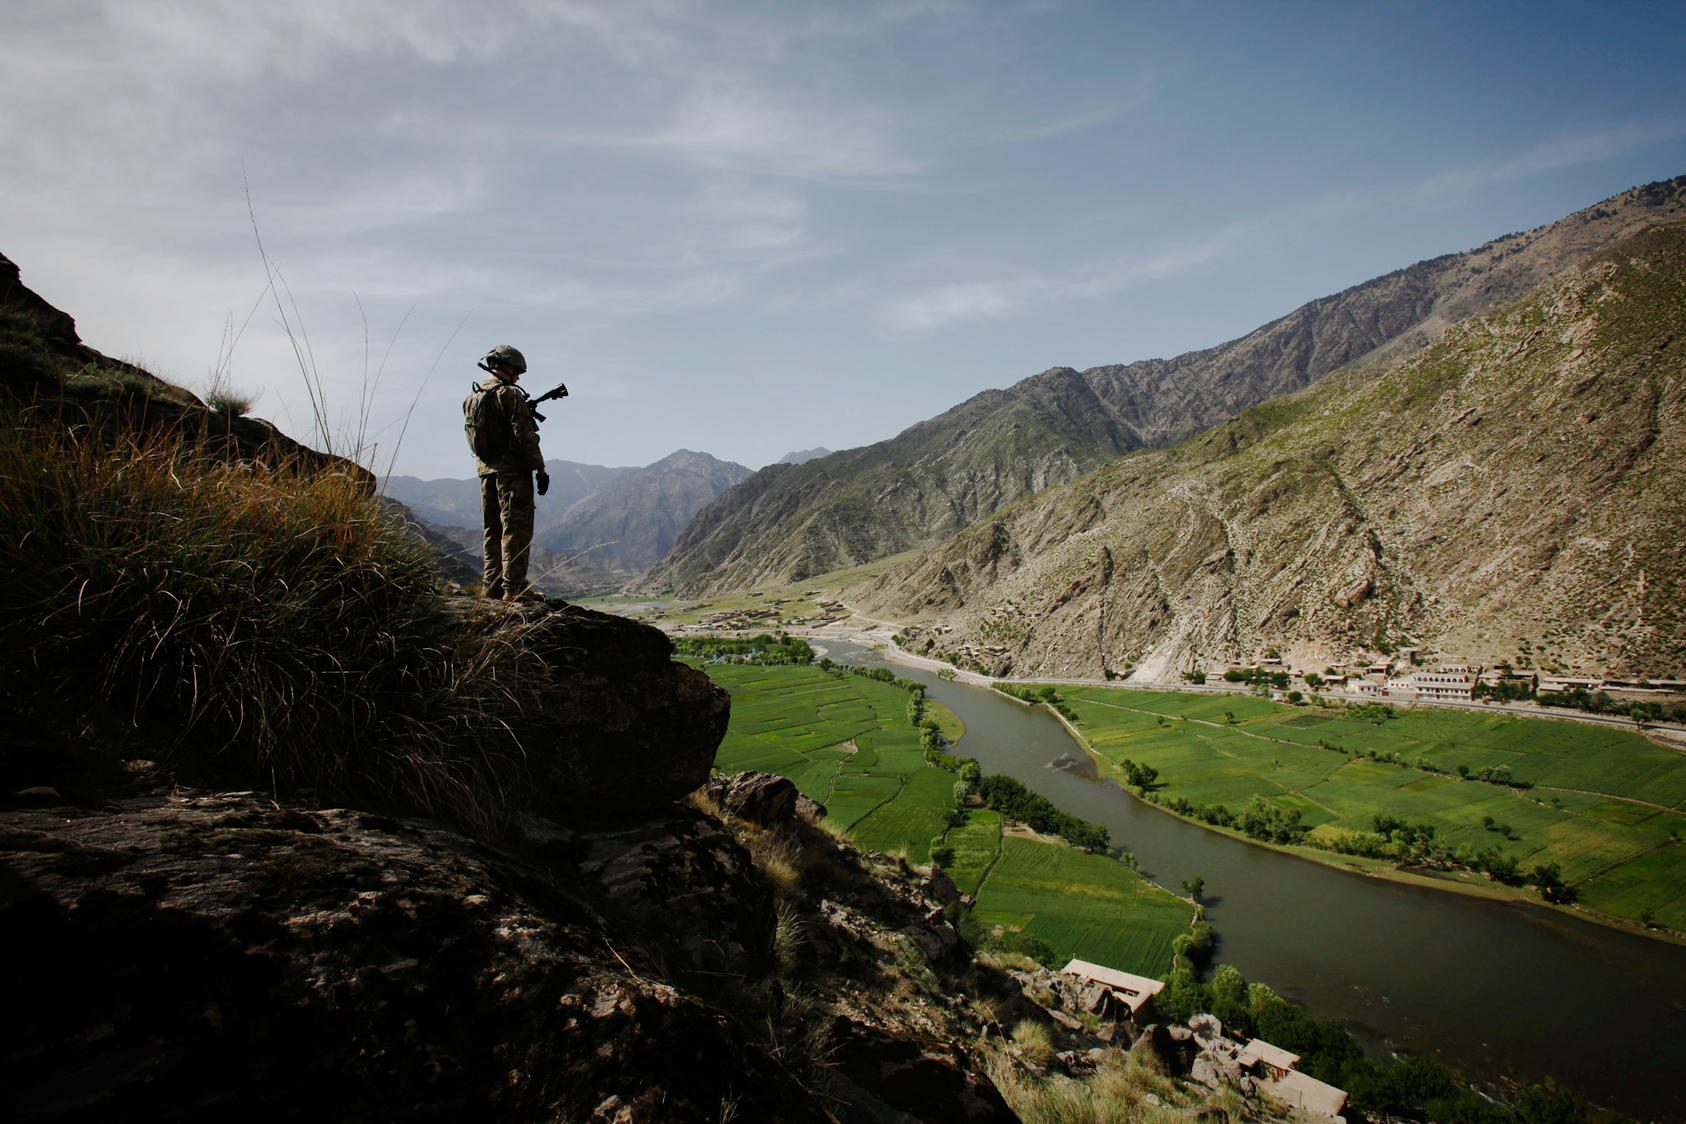 A soldier with U.S. Army's 4th Brigade looks over the Pech Valley in the Kunar province of Afghanistan, April 13, 2010. Photo Courtesy of The New York Times/Christoph Bangert